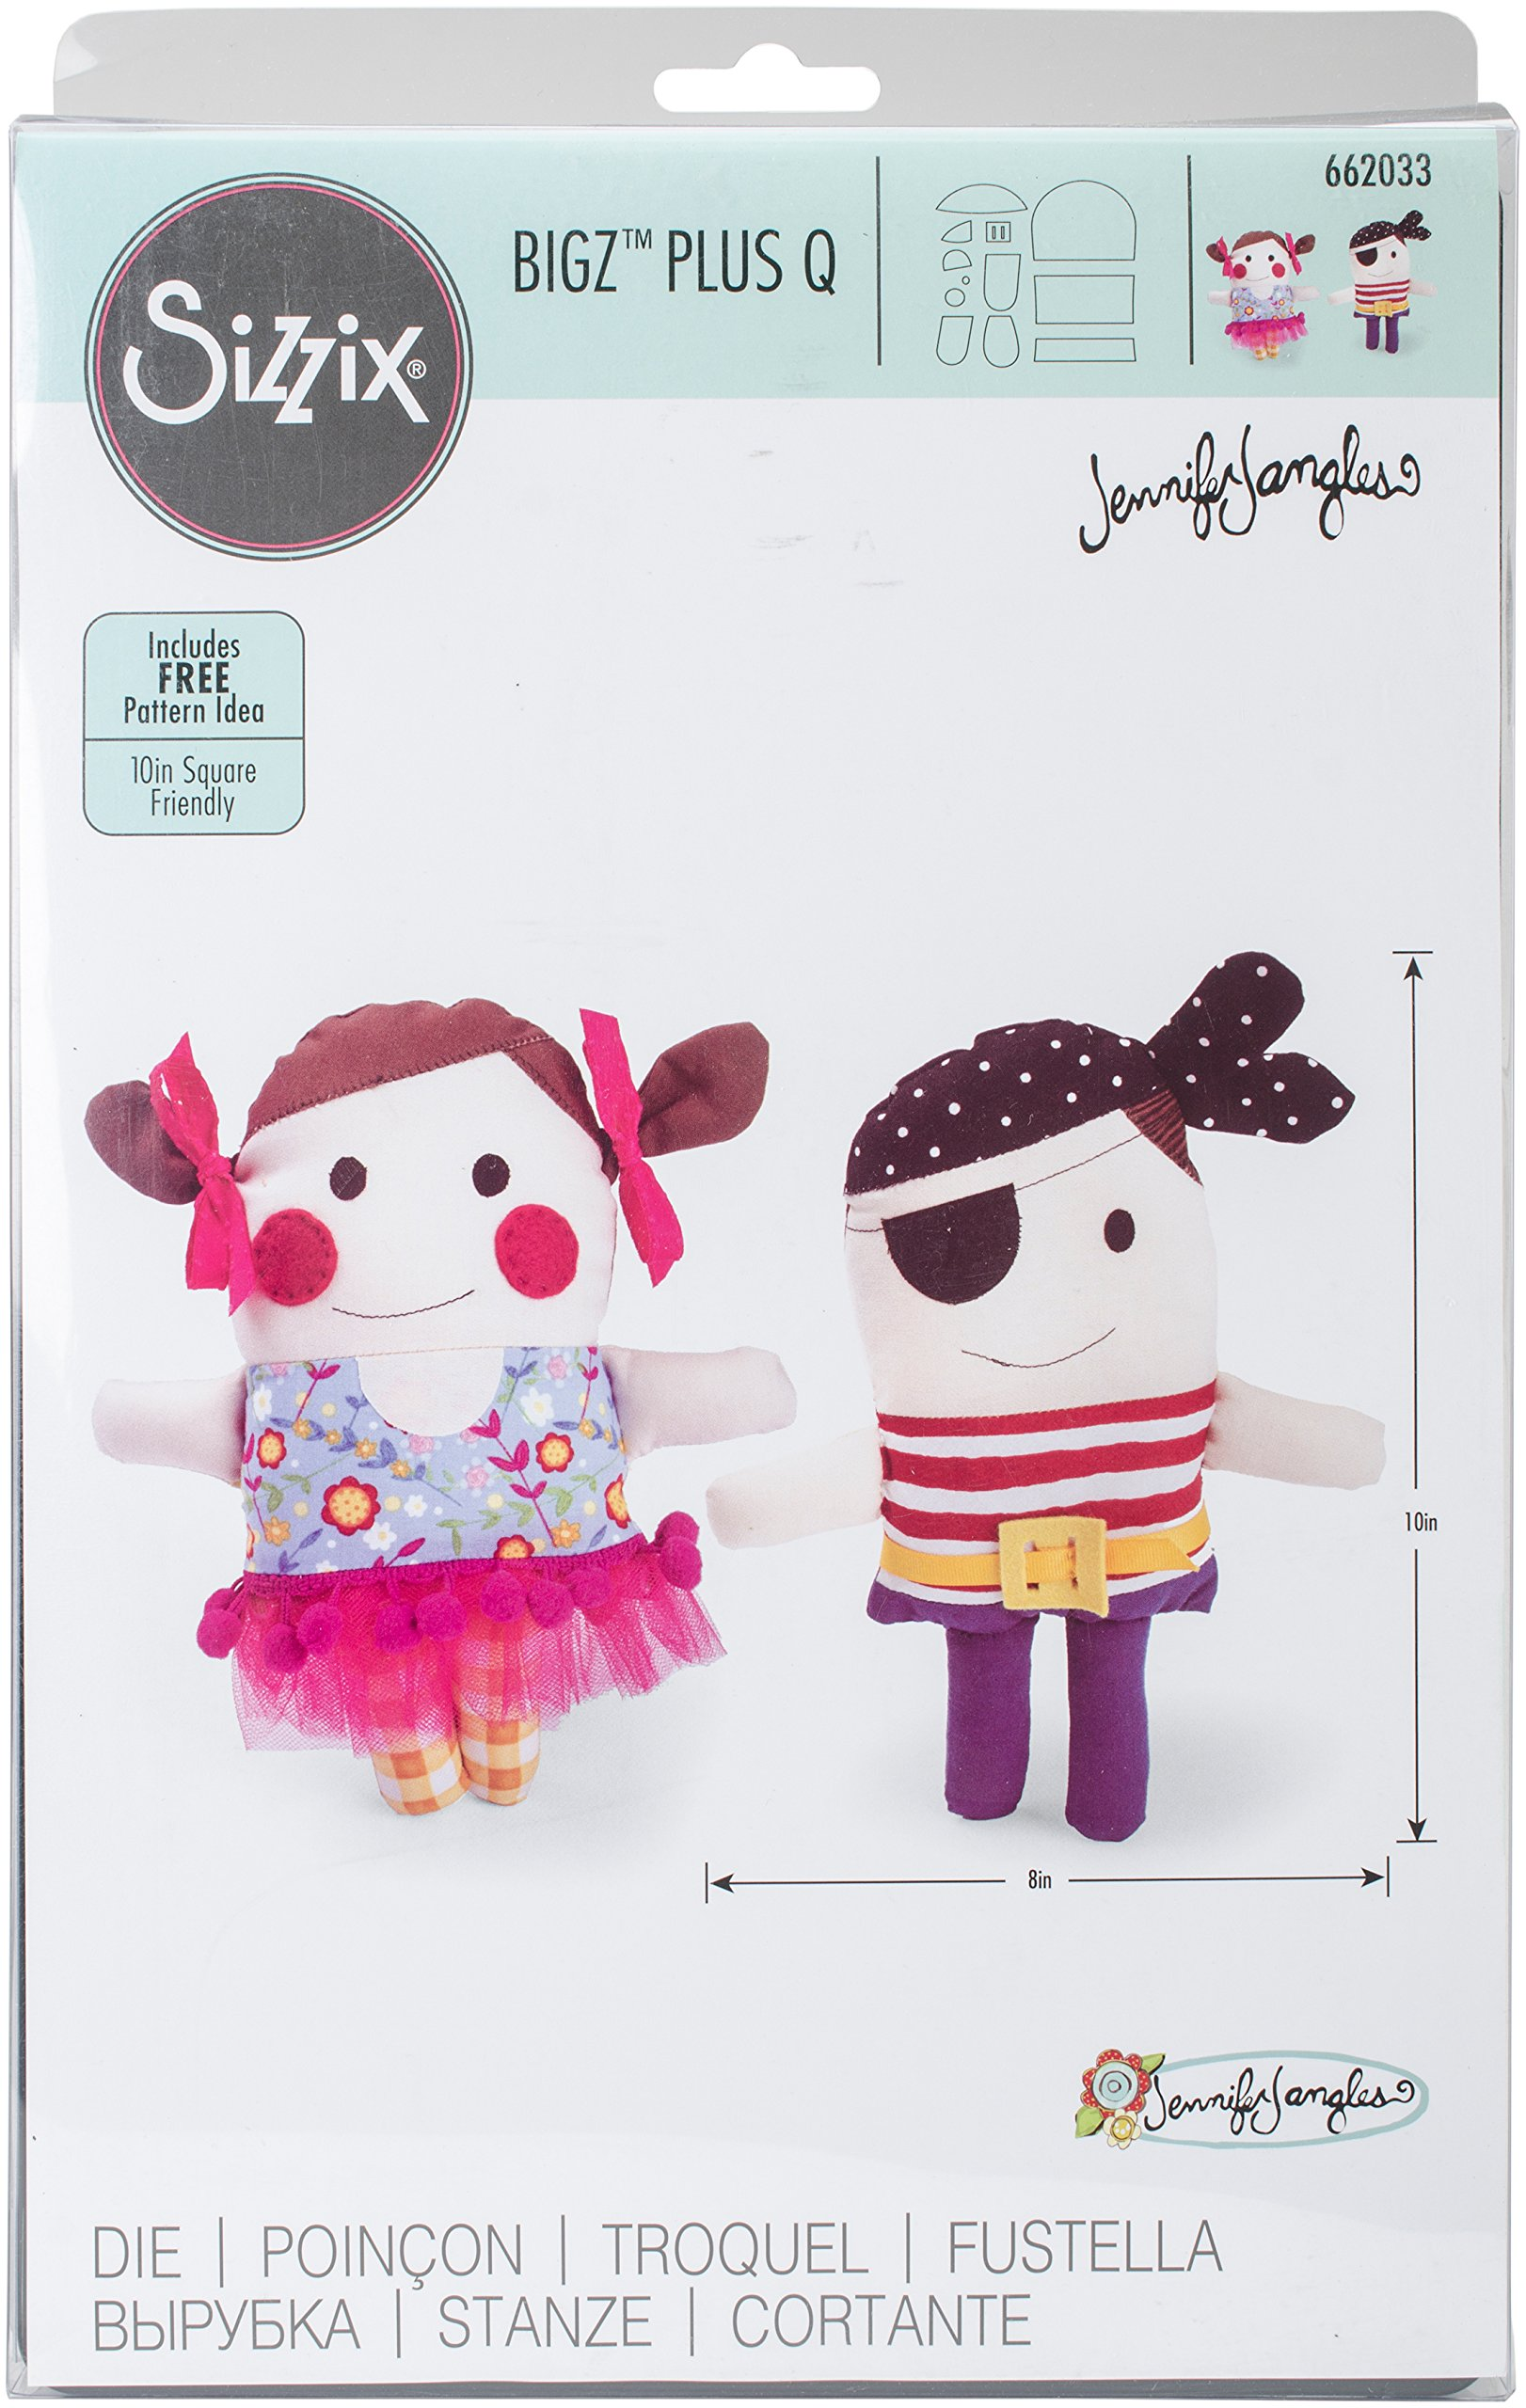 Sizzix 662033 Bigz Dies Plus-Pirate & Ballerina Dolls